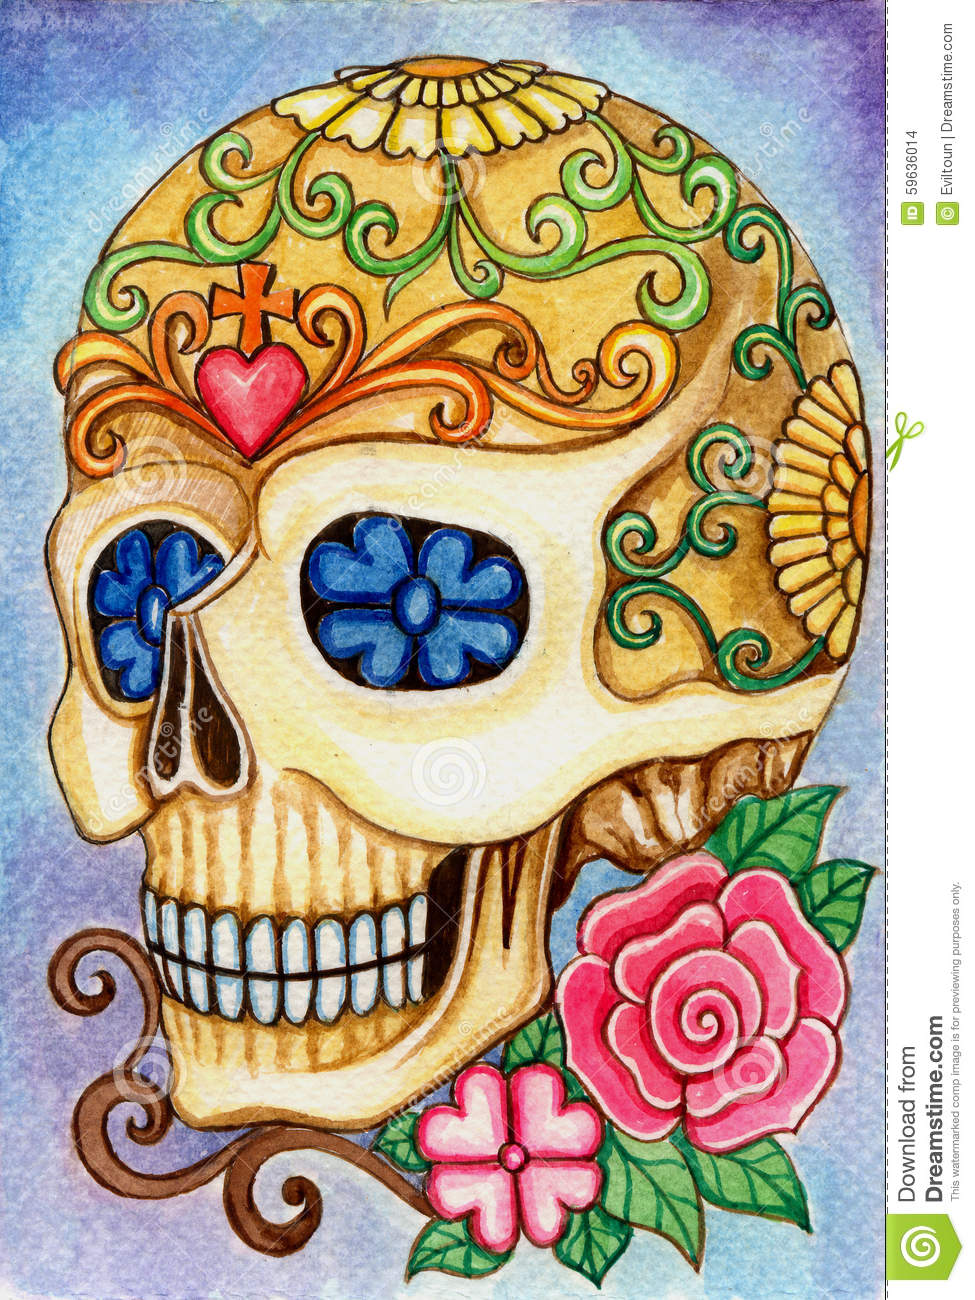 malma with Stock Illustration Art Skull Day Dead Festival Design Head Hand Watercolor Painting Paper Image59636014 on Vildsvin moreover Nueve further Melting Clipart in addition Transformar Ikea Espejos Malmas in addition 10.